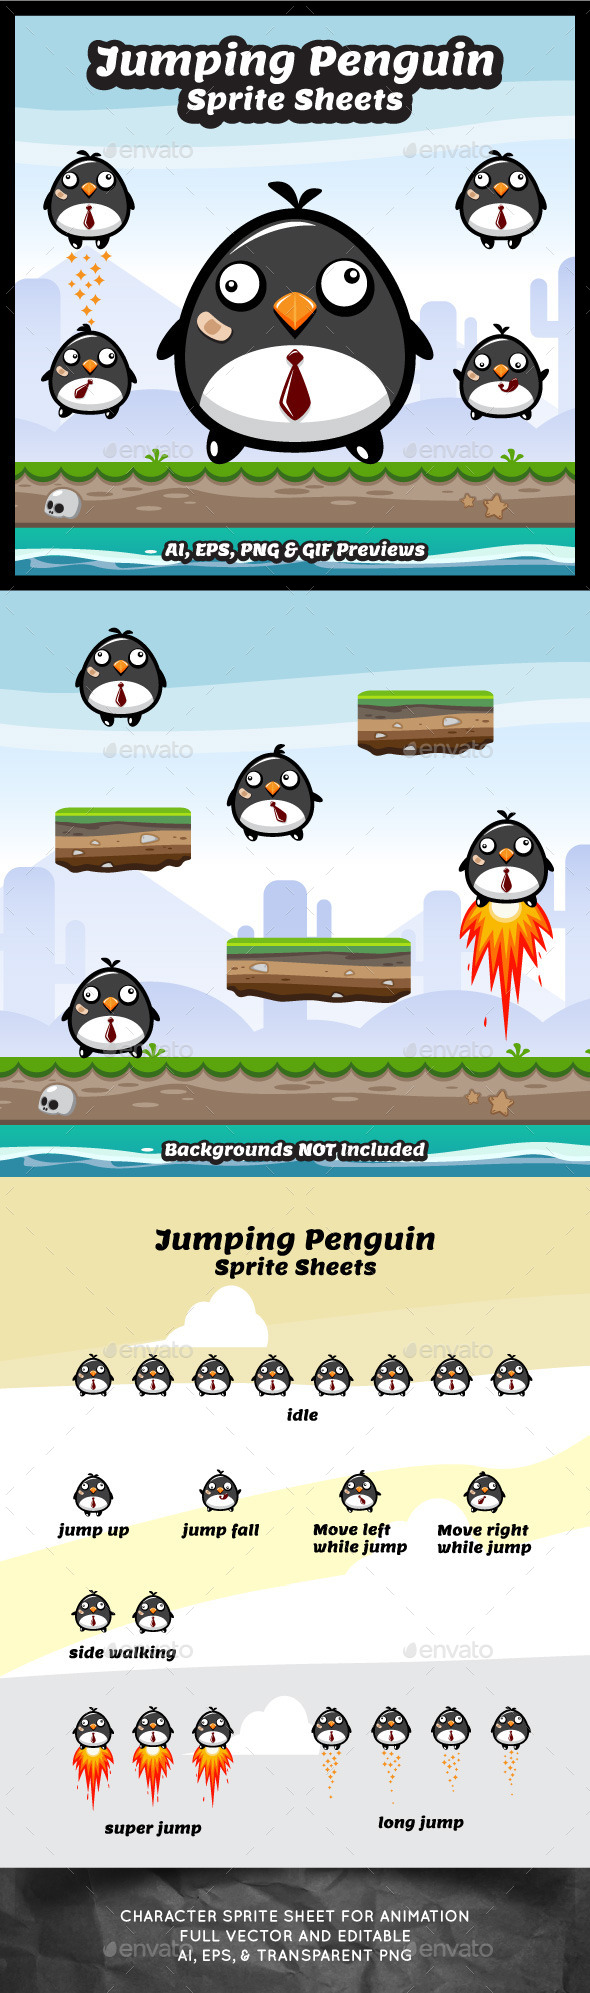 Jumping Penguin Sprite Sheets